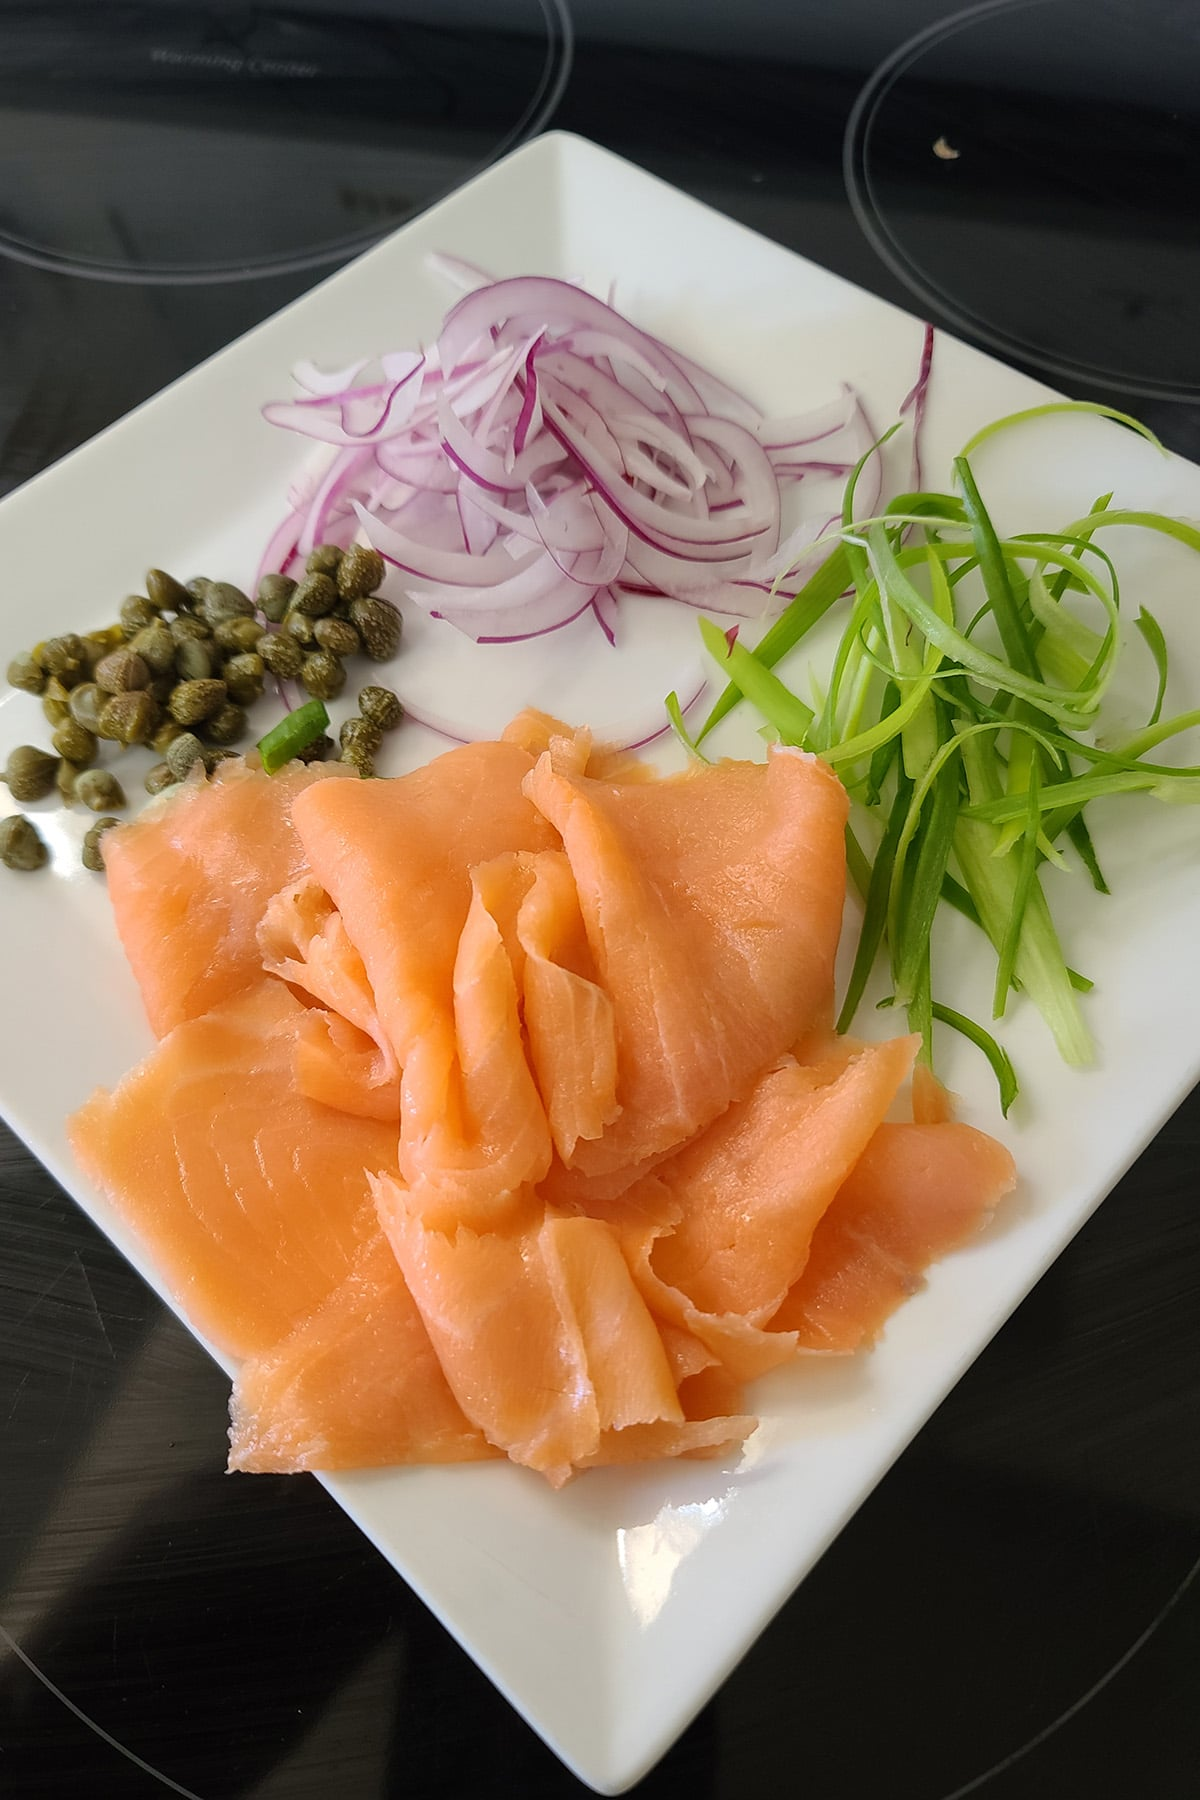 A plate with smoked salmon, green onion ribbons, slices of red onion, and drained capers.